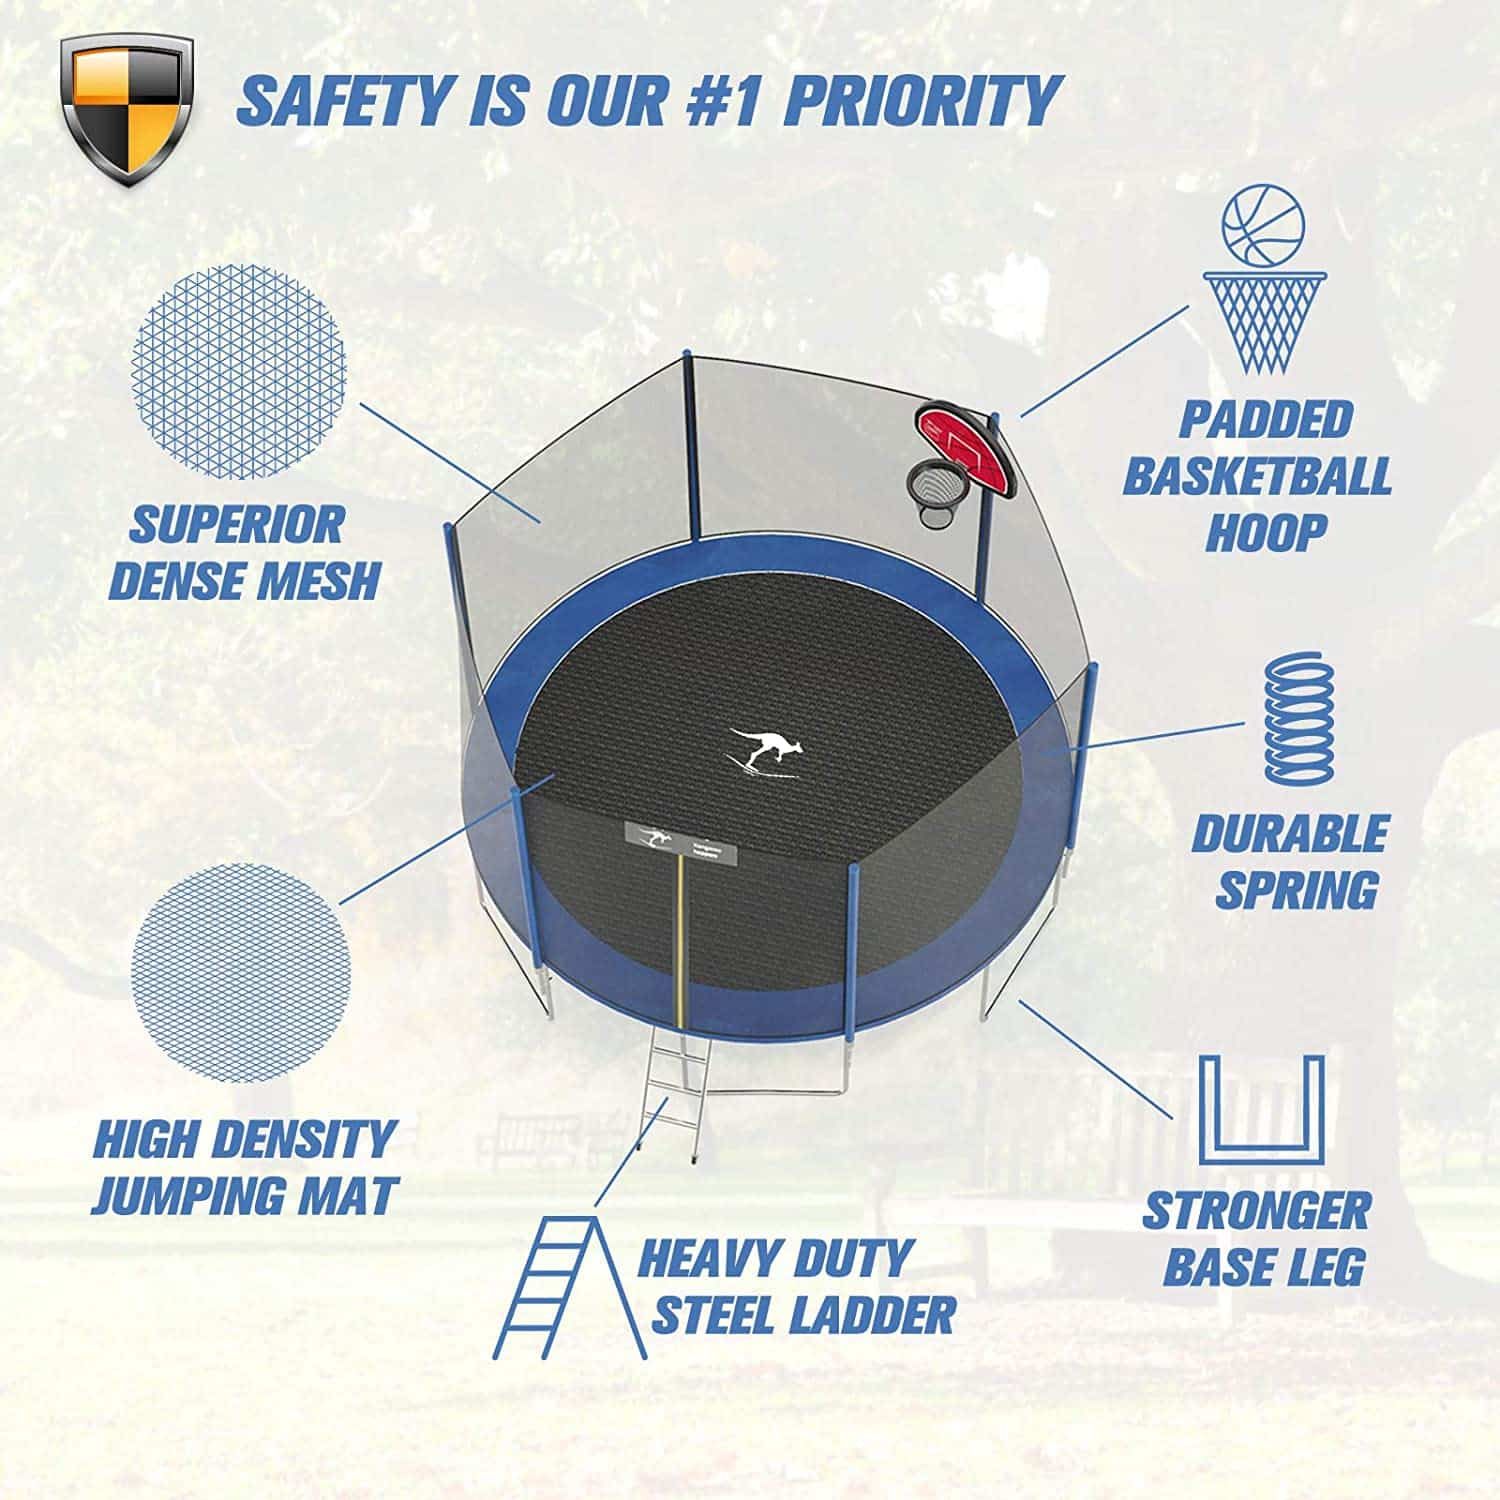 This is an image of Kangaroo Hoppers 12 14 15 FT Trampoline with Safety Enclosure Net with it main features.